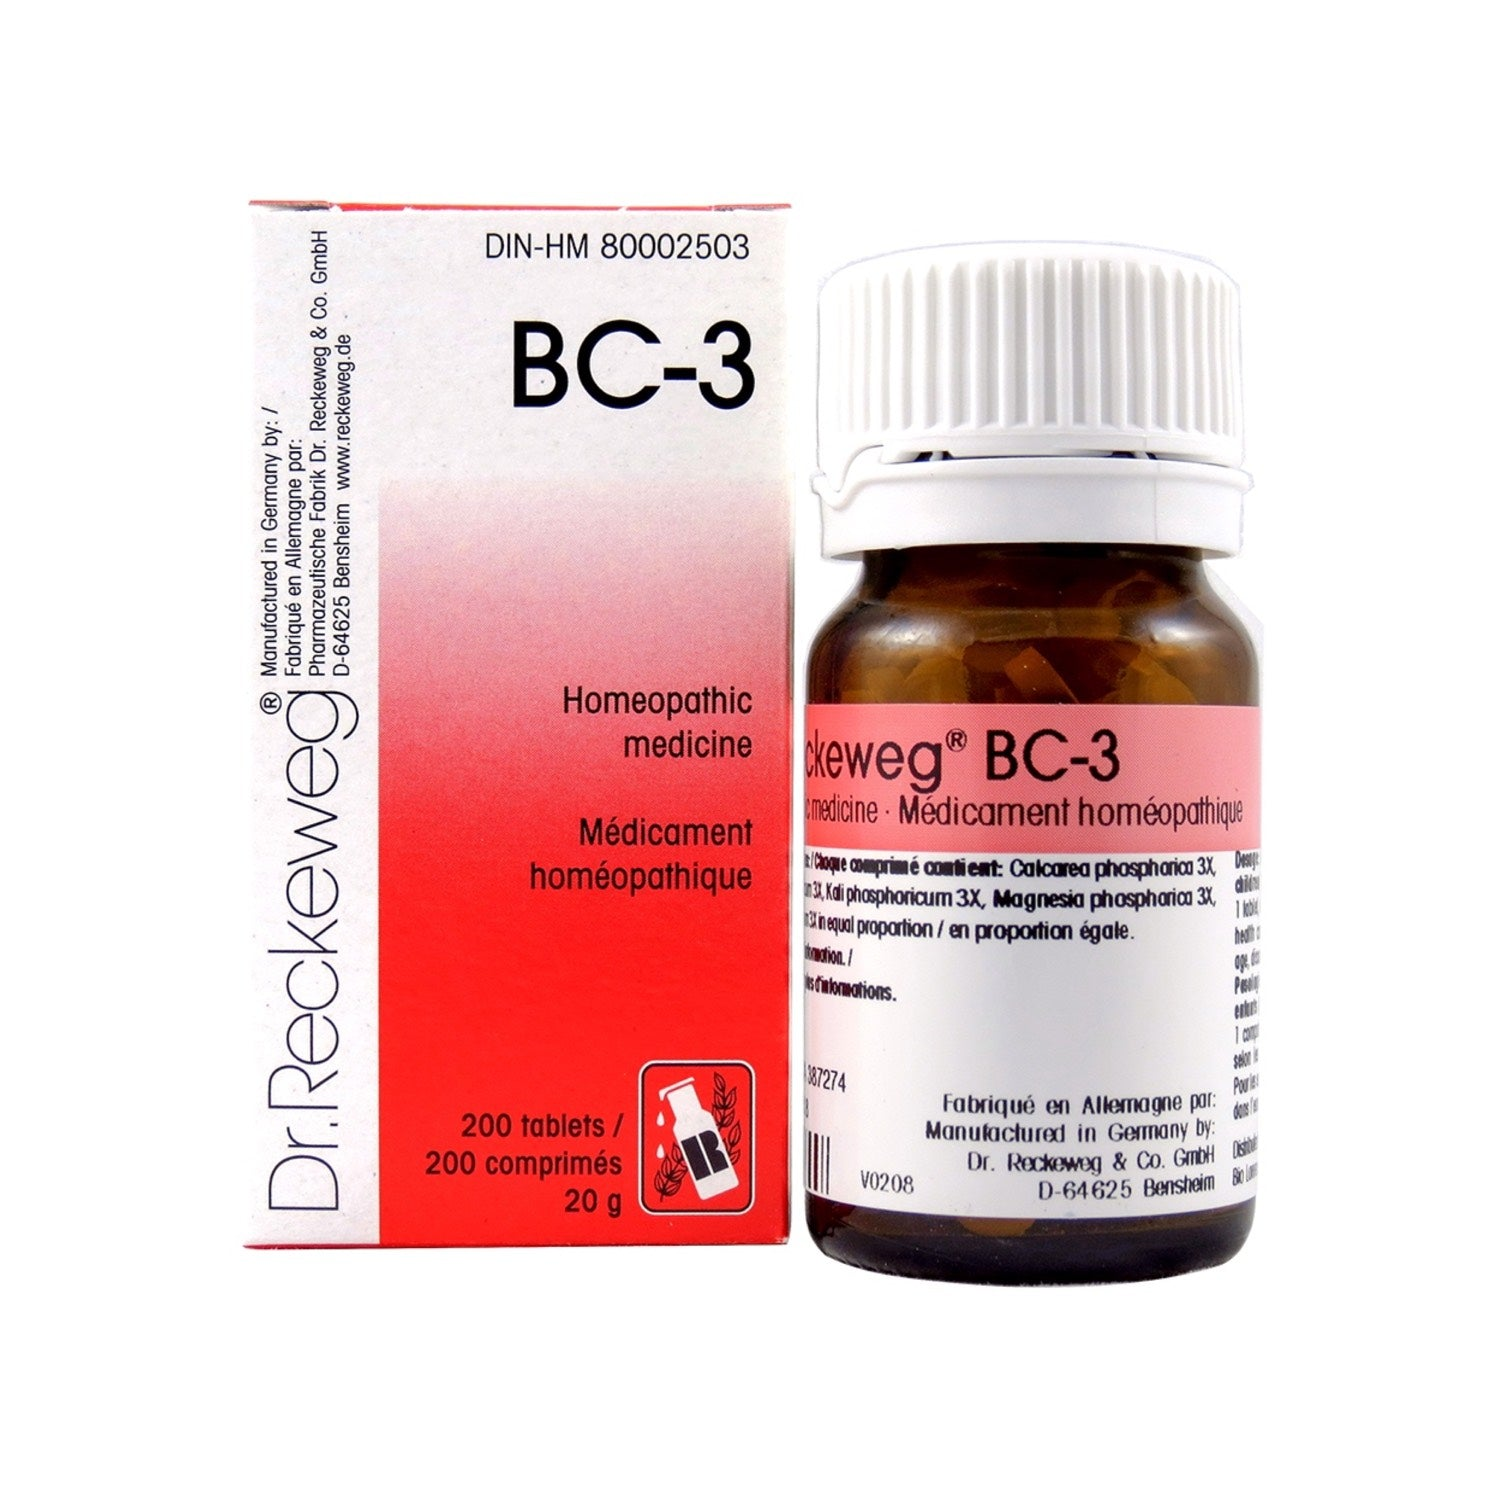 BC-3 Homeopathic medicine – Combination salt  200 tablets (20 g)